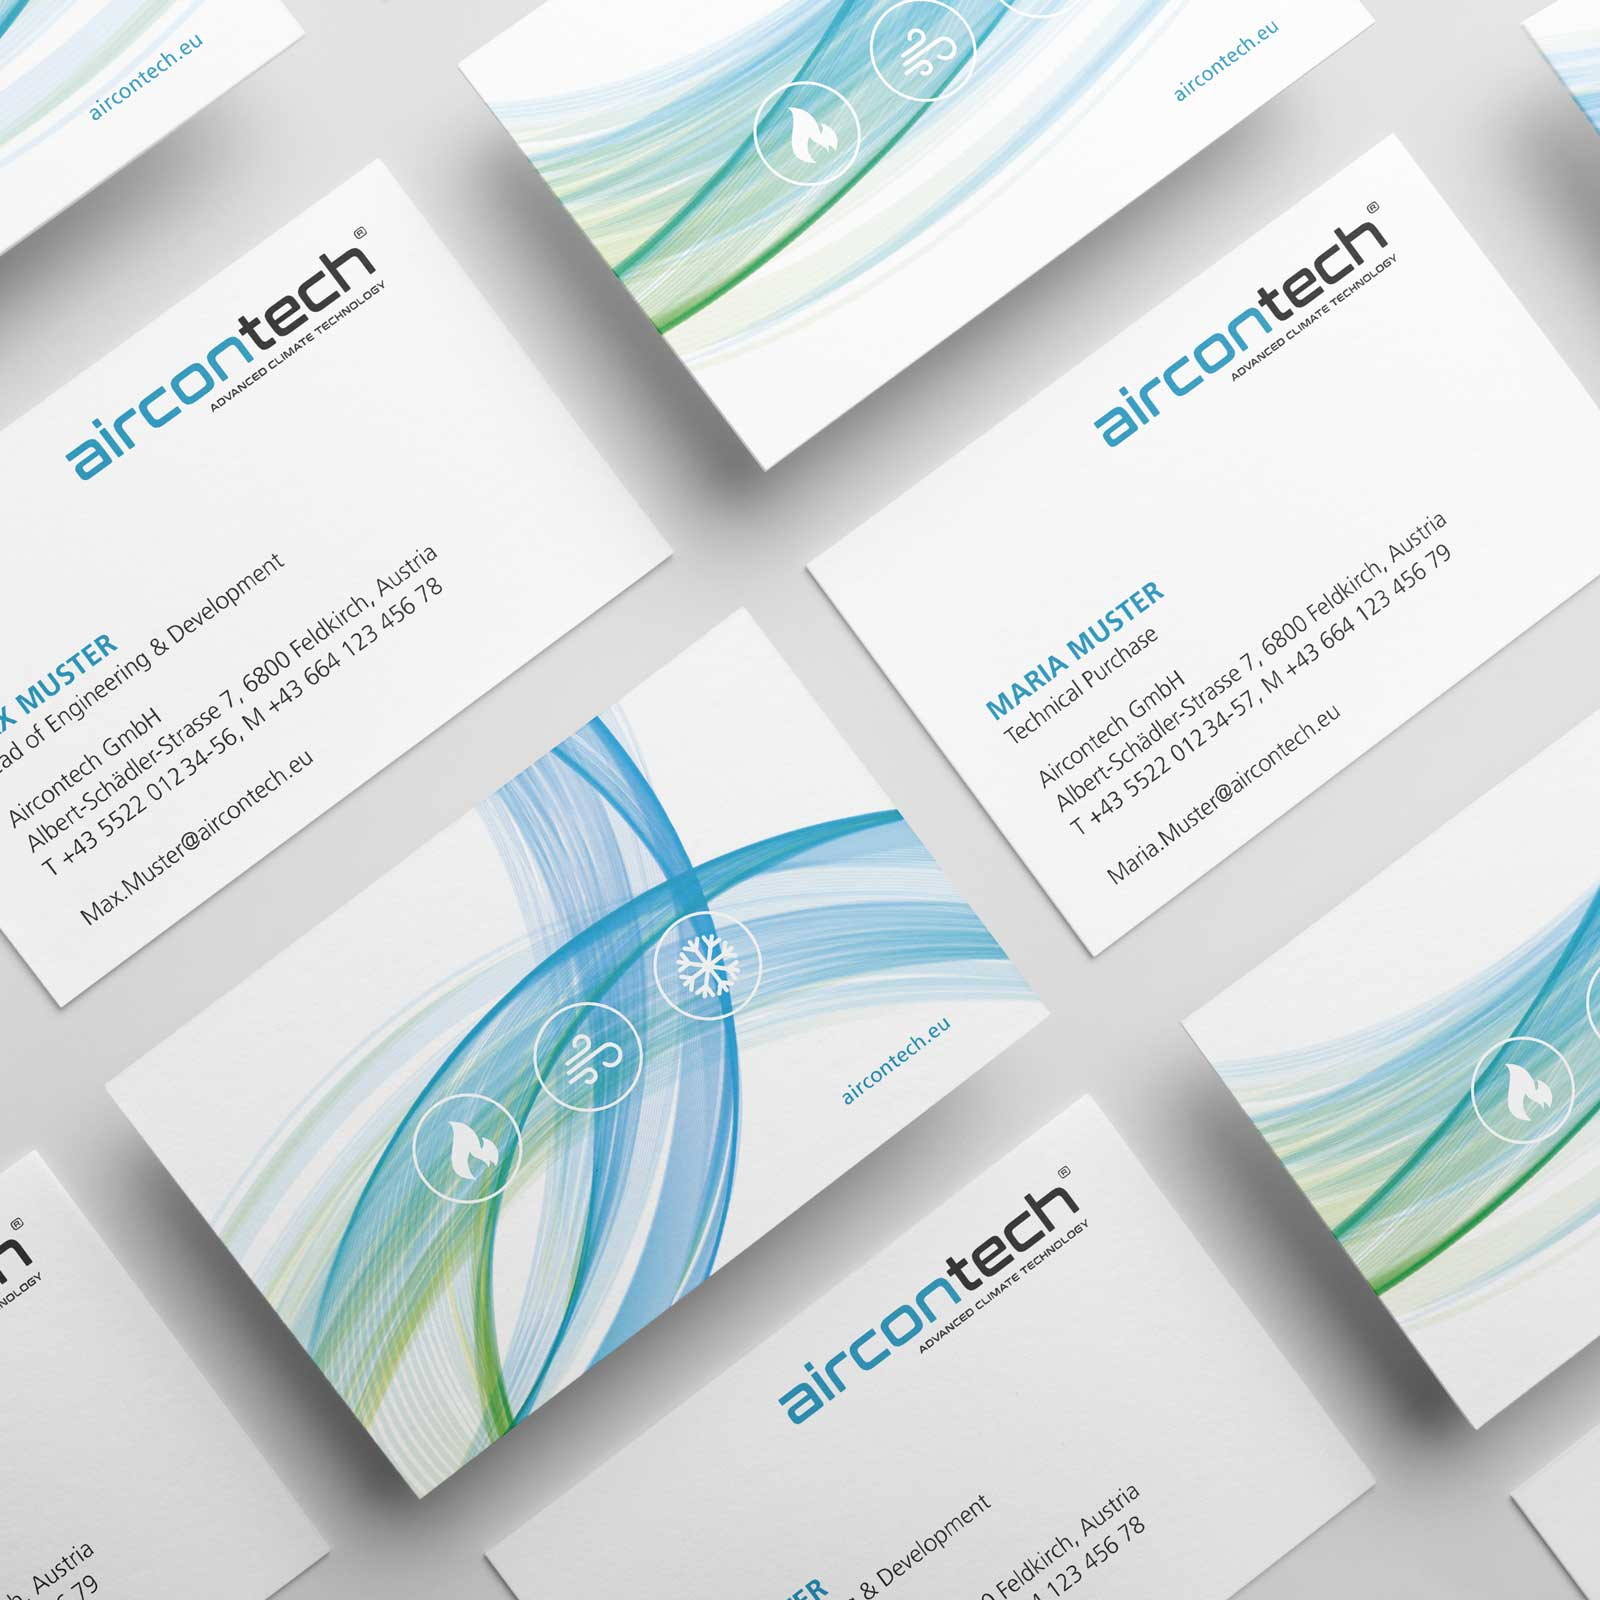 aircontech Corporate Design